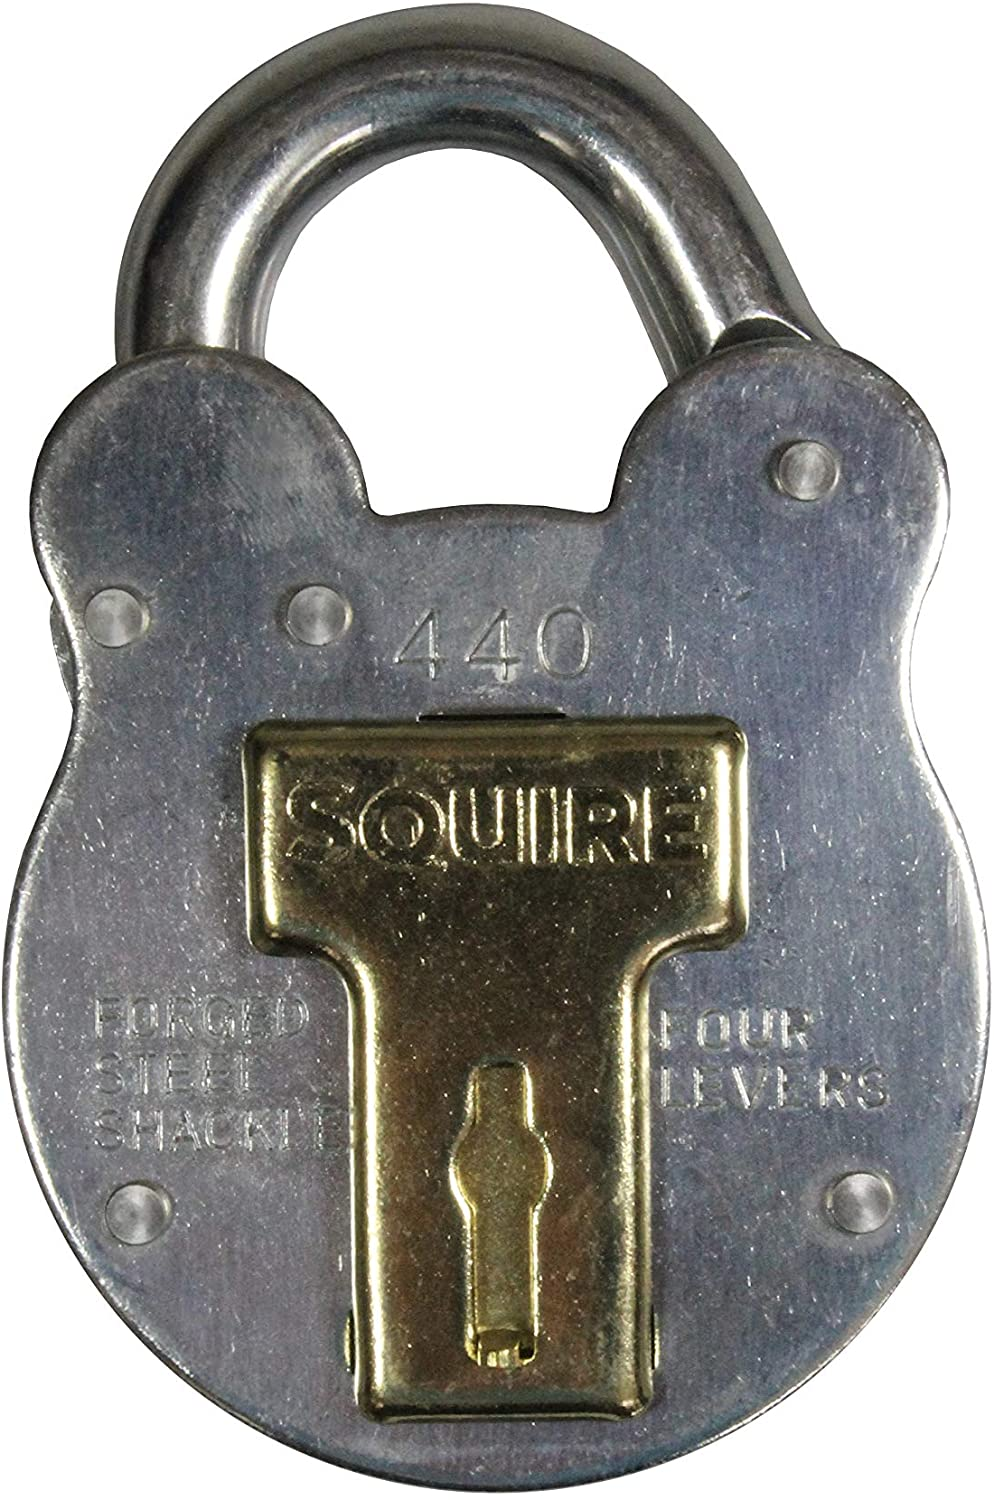 Squire 4-lever Galvanised Steel - Old English Padlock, 50mm